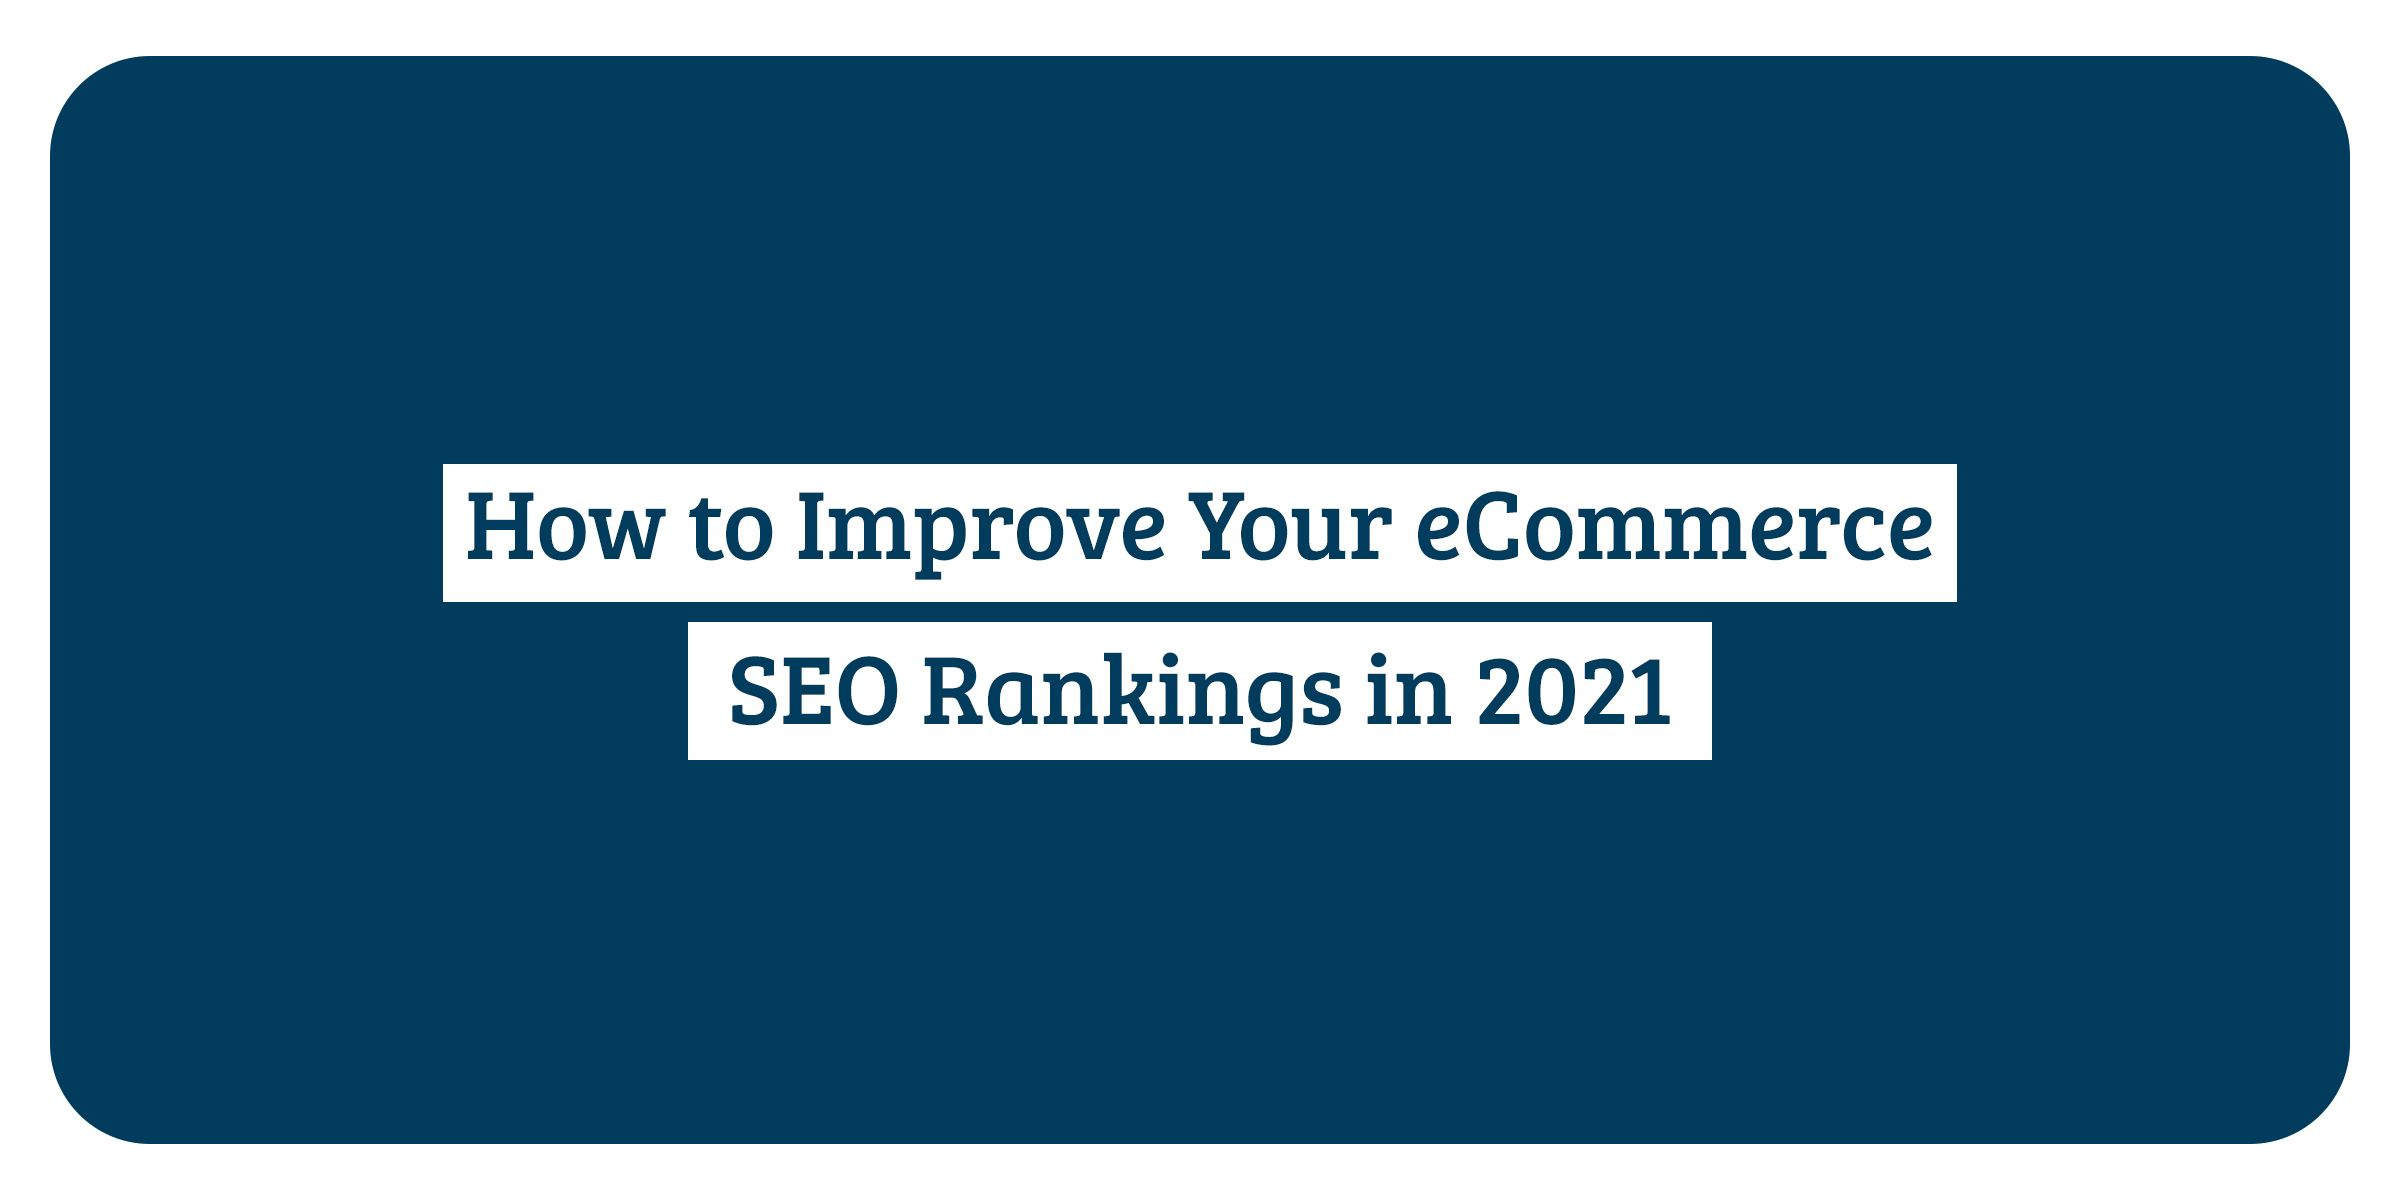 /how-to-improve-your-ecommerce-seo-rankings-in-2021-831233hq feature image